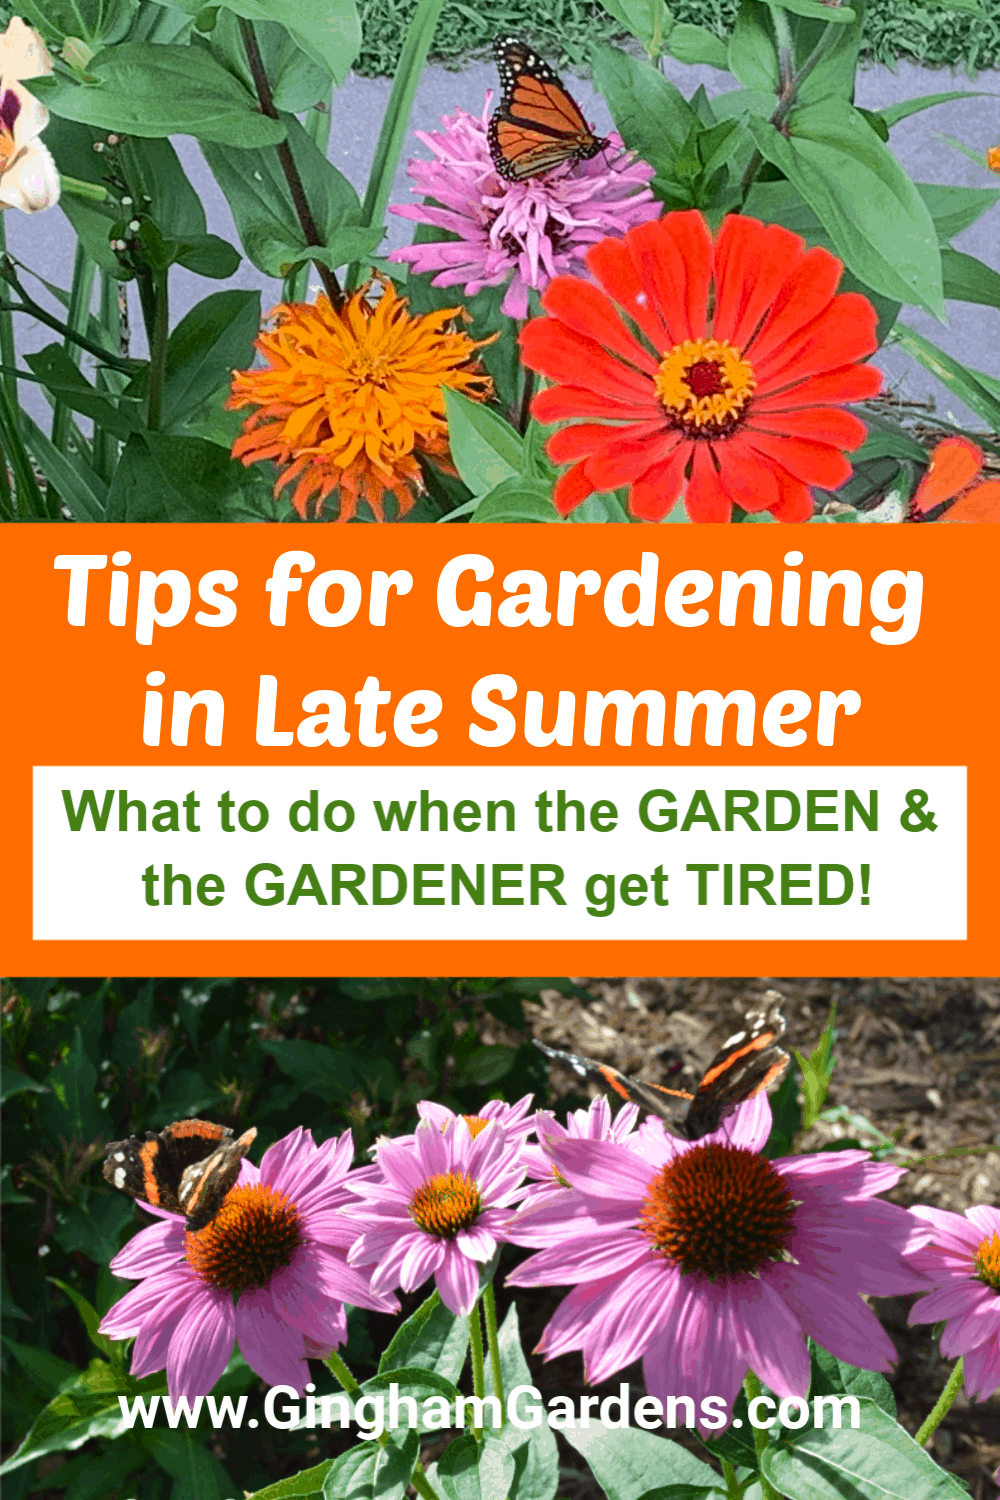 Images of flowers with text overlay - Tips for Gardening in Late Summer